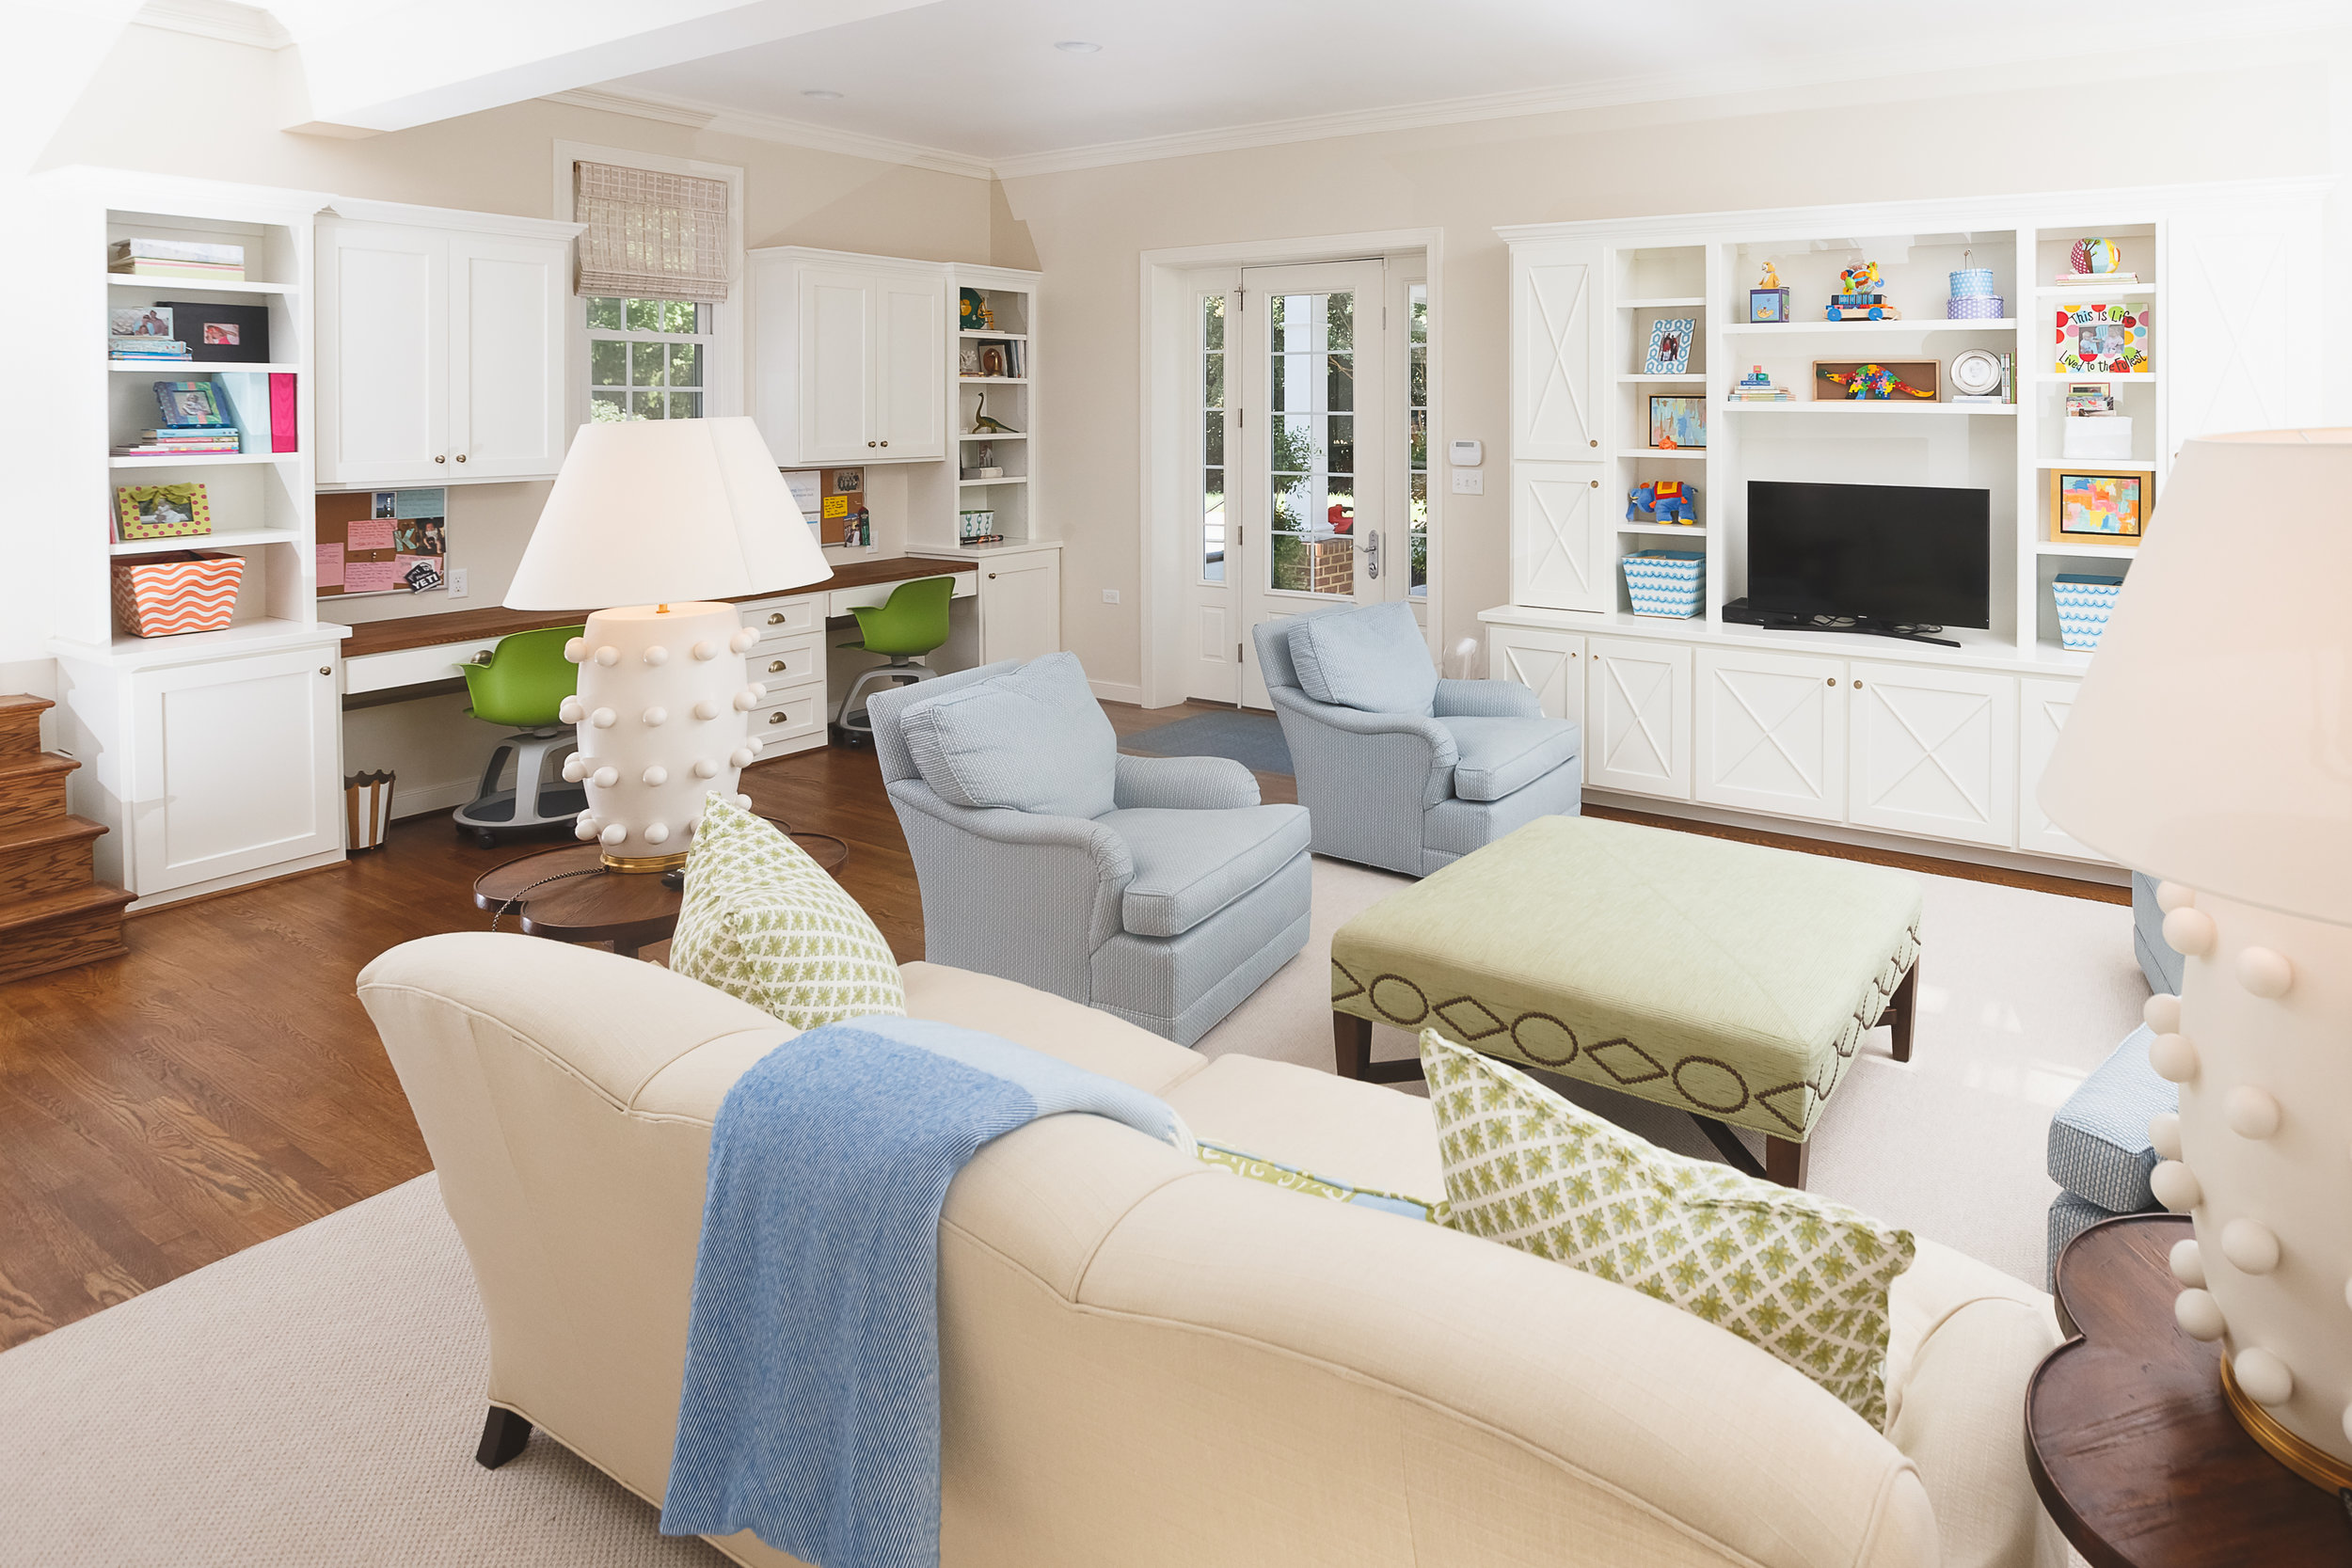 Residential Interior Remodel - James River ConstructionDesigner Mark White